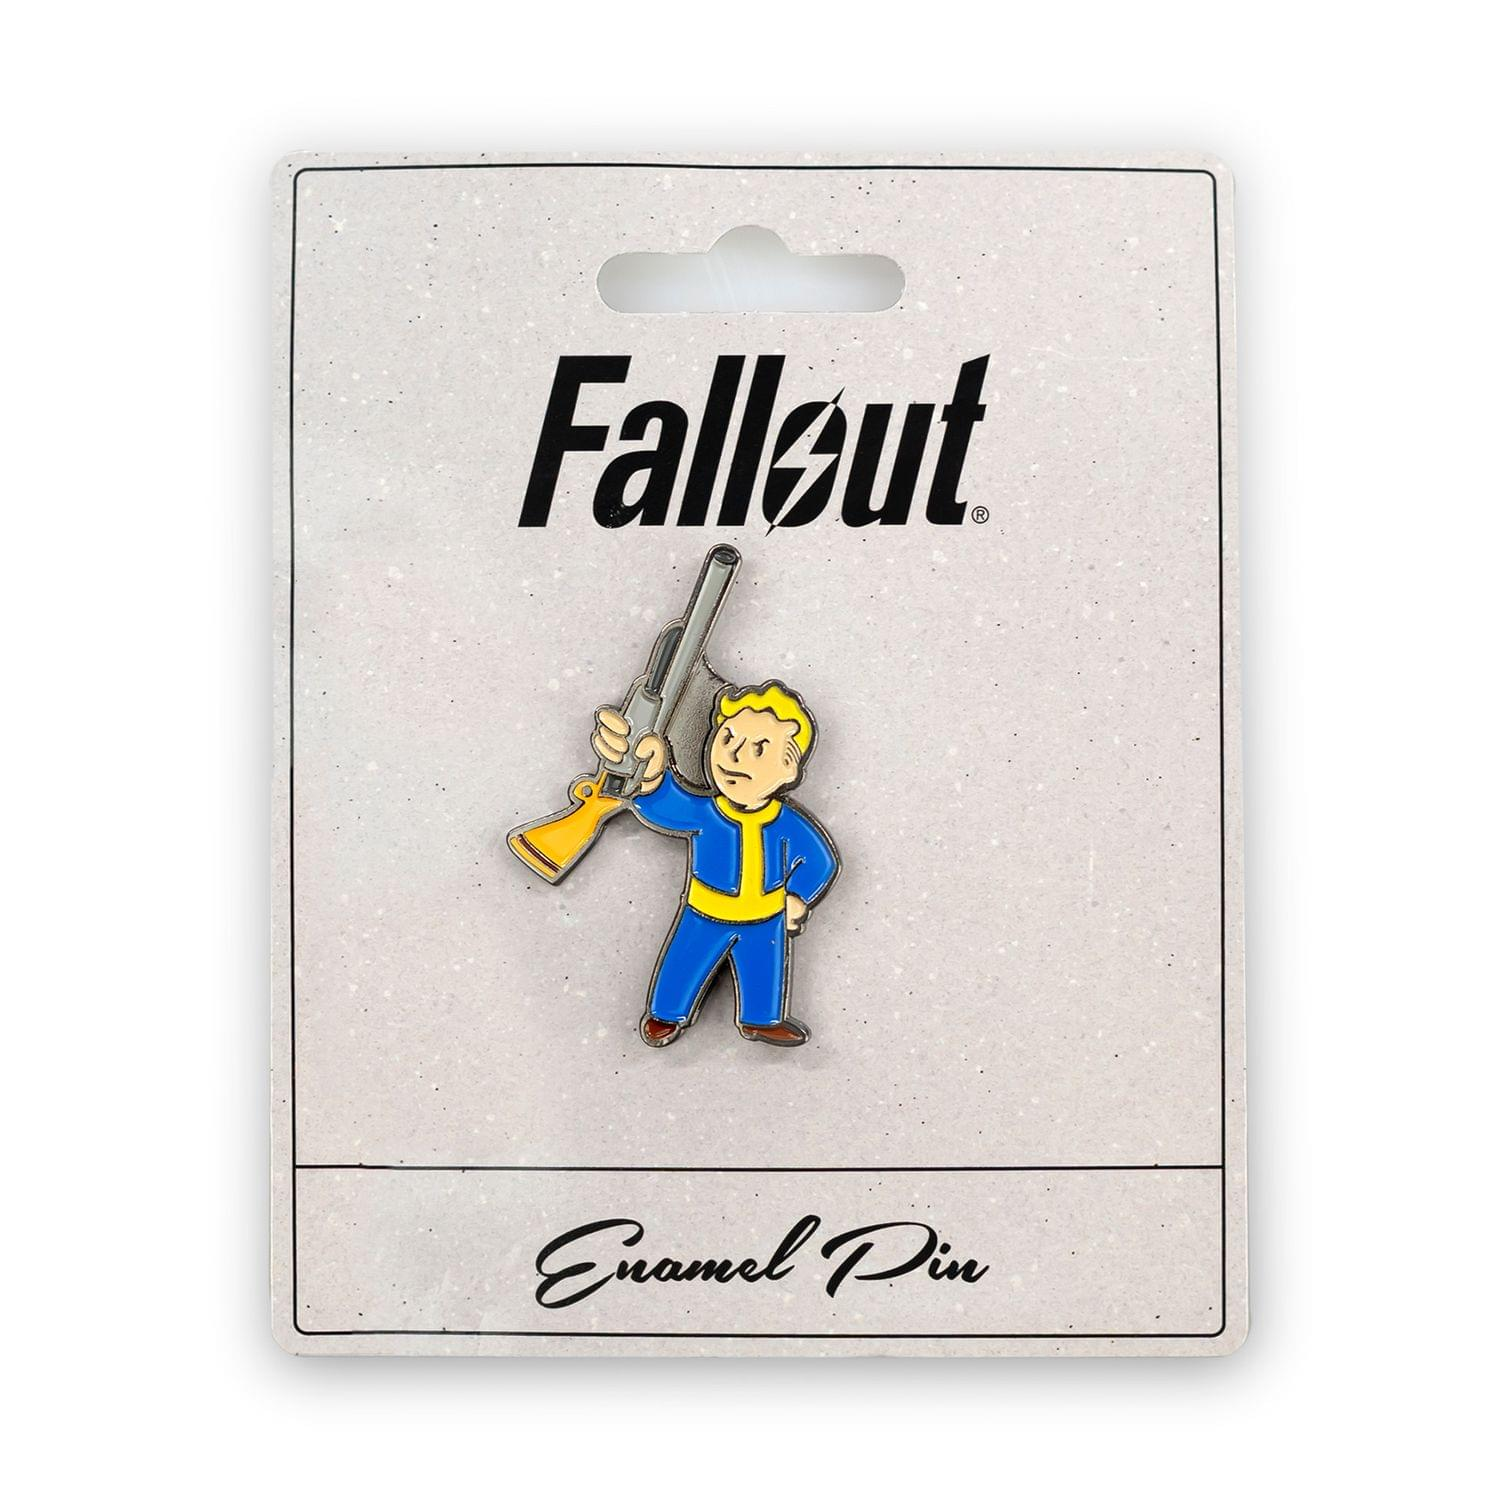 Fallout Basher Perk Pin | Official Fallout Video Series Game Small Enamel Pin